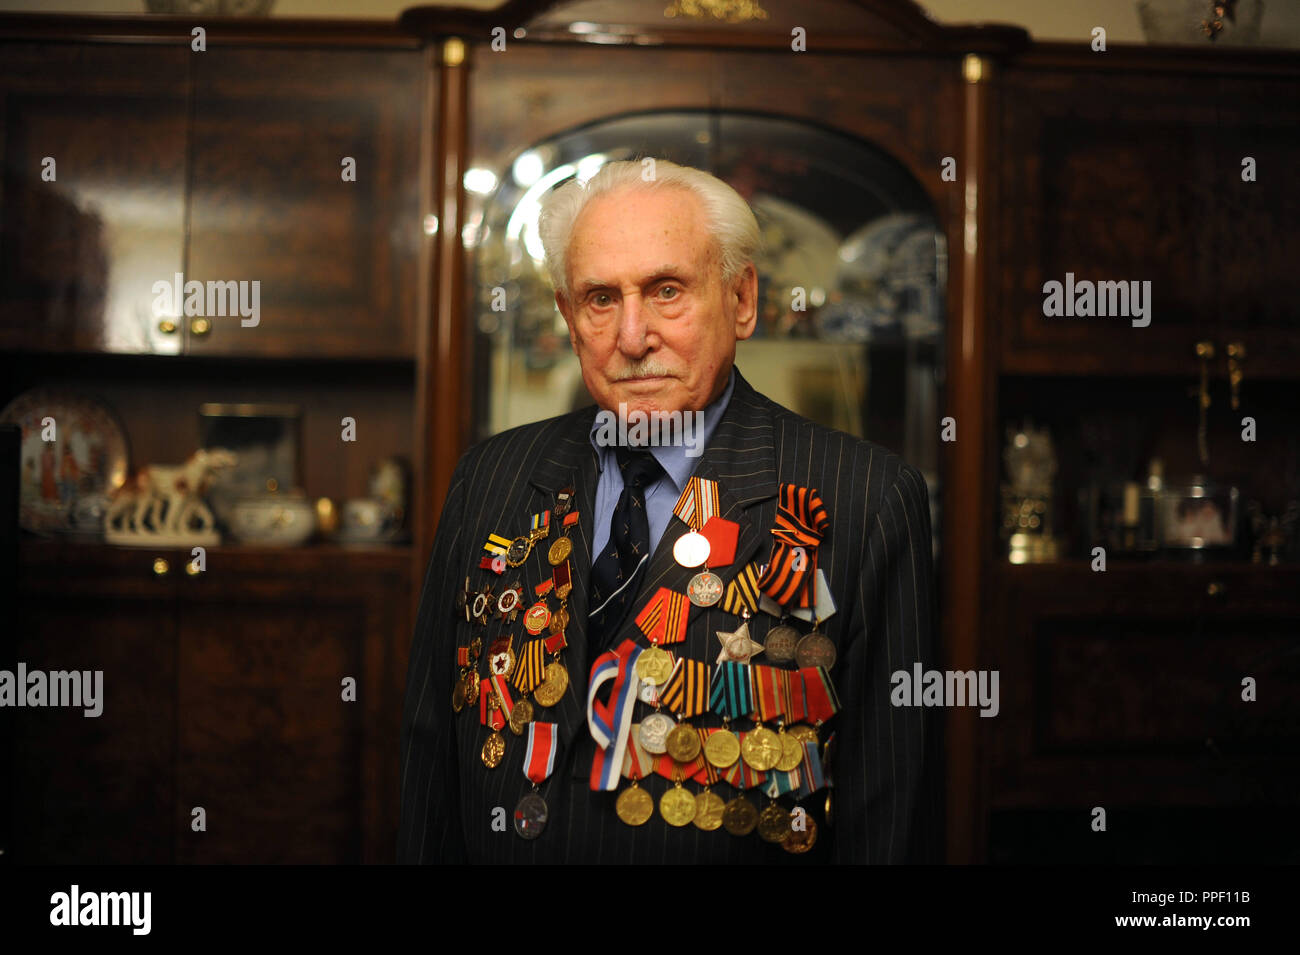 David Dushmann, a 91-year-old Russian Jew living in Munich, who in 1945 liberated the Auschwitz concentration camp with a tank of the Red Army. Later, he successfully worked as a fencer and over 30 years as a fencing nationalist of the Soviet Union. The picture shows him with his military and sports medals. Stock Photo